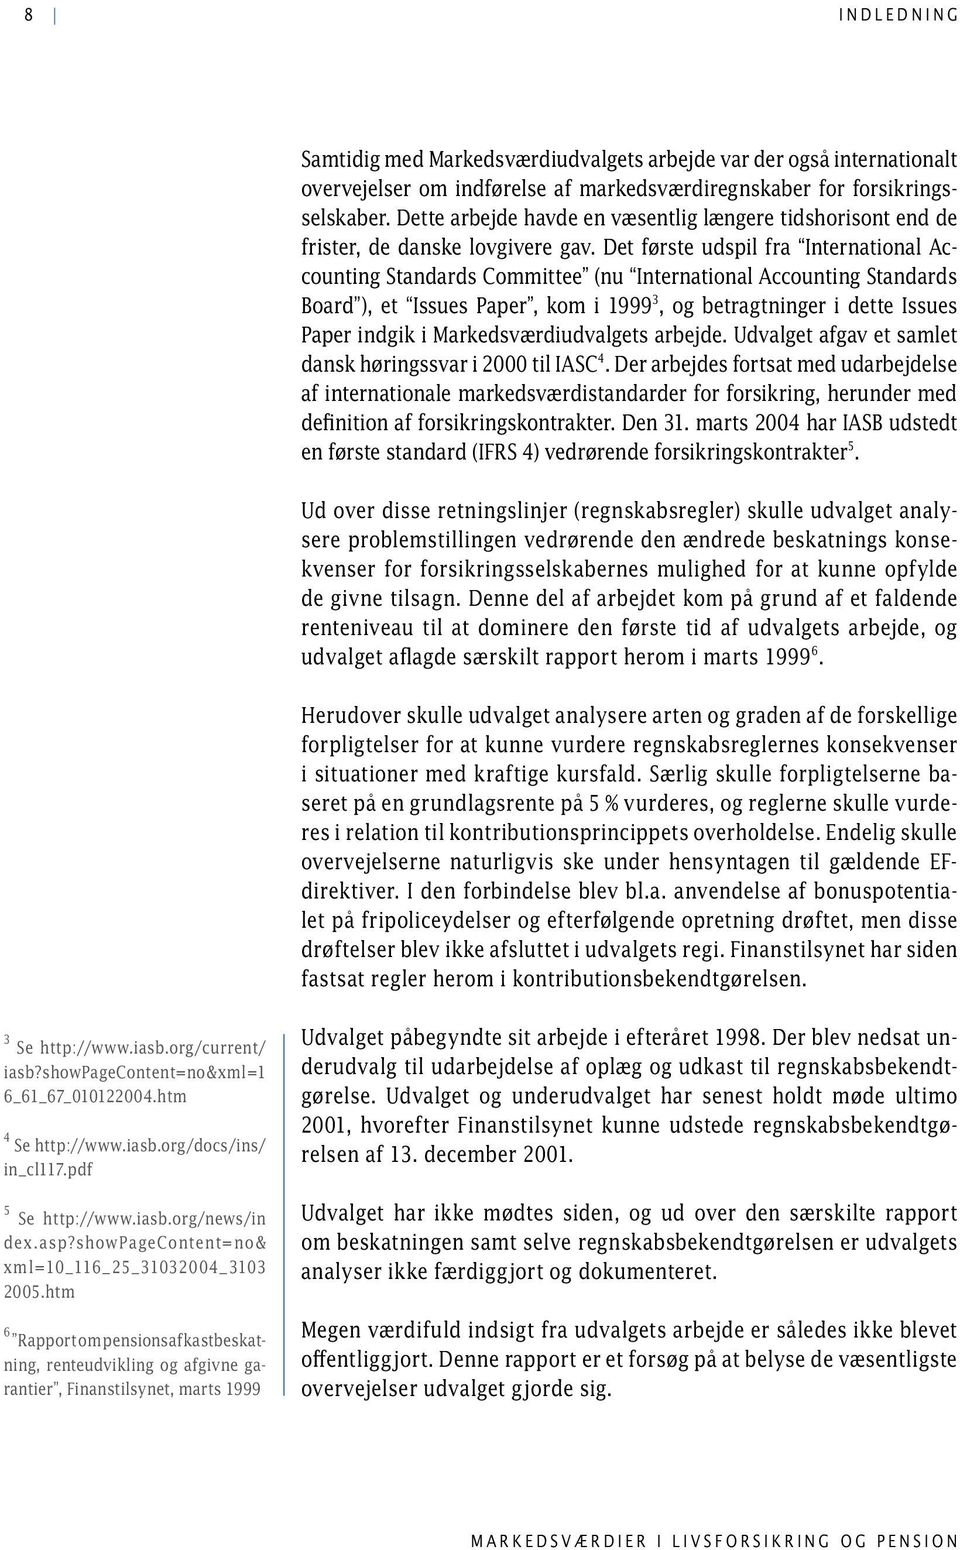 Det første udspil fra International Accounting Standards Committee (nu International Accounting Standards Board ), et Issues Paper, kom i 1999 3, og betragtninger i dette Issues Paper indgik i